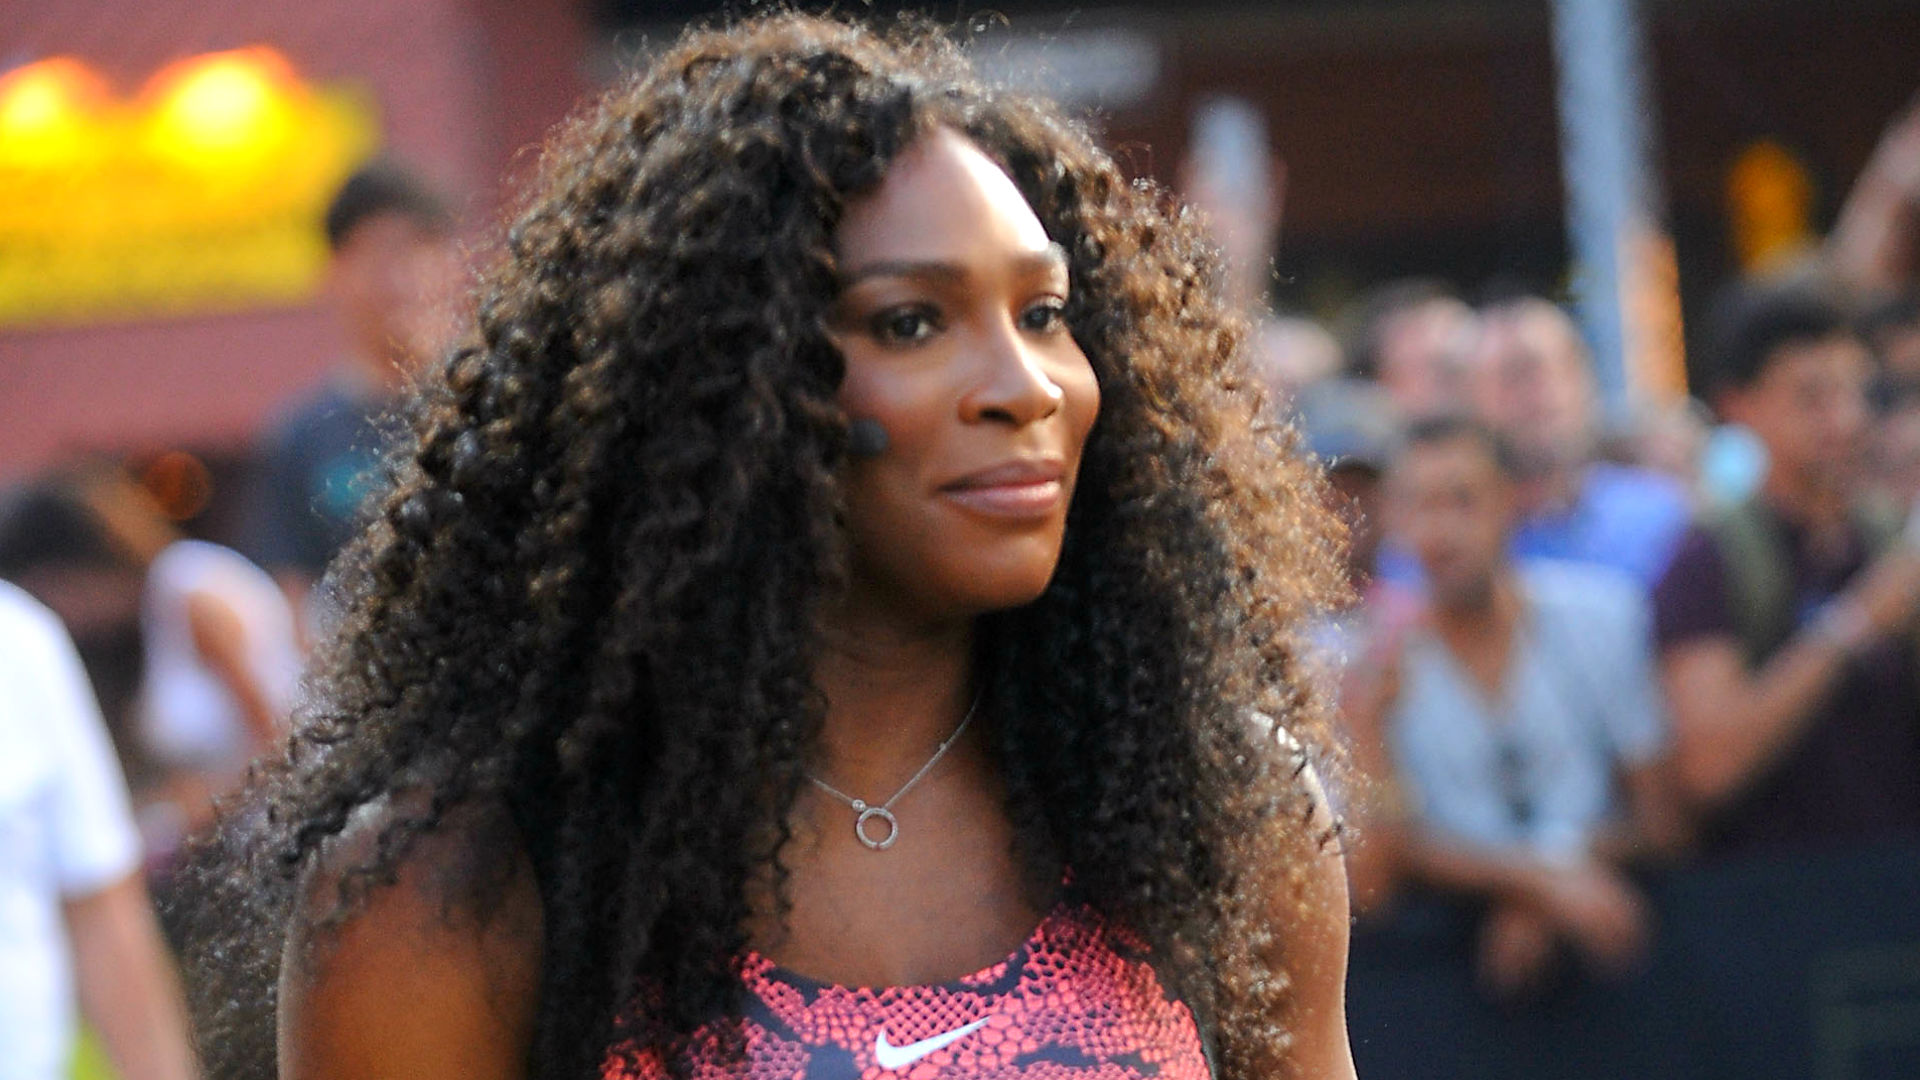 williams-serena082915-getty-ftr.jpg